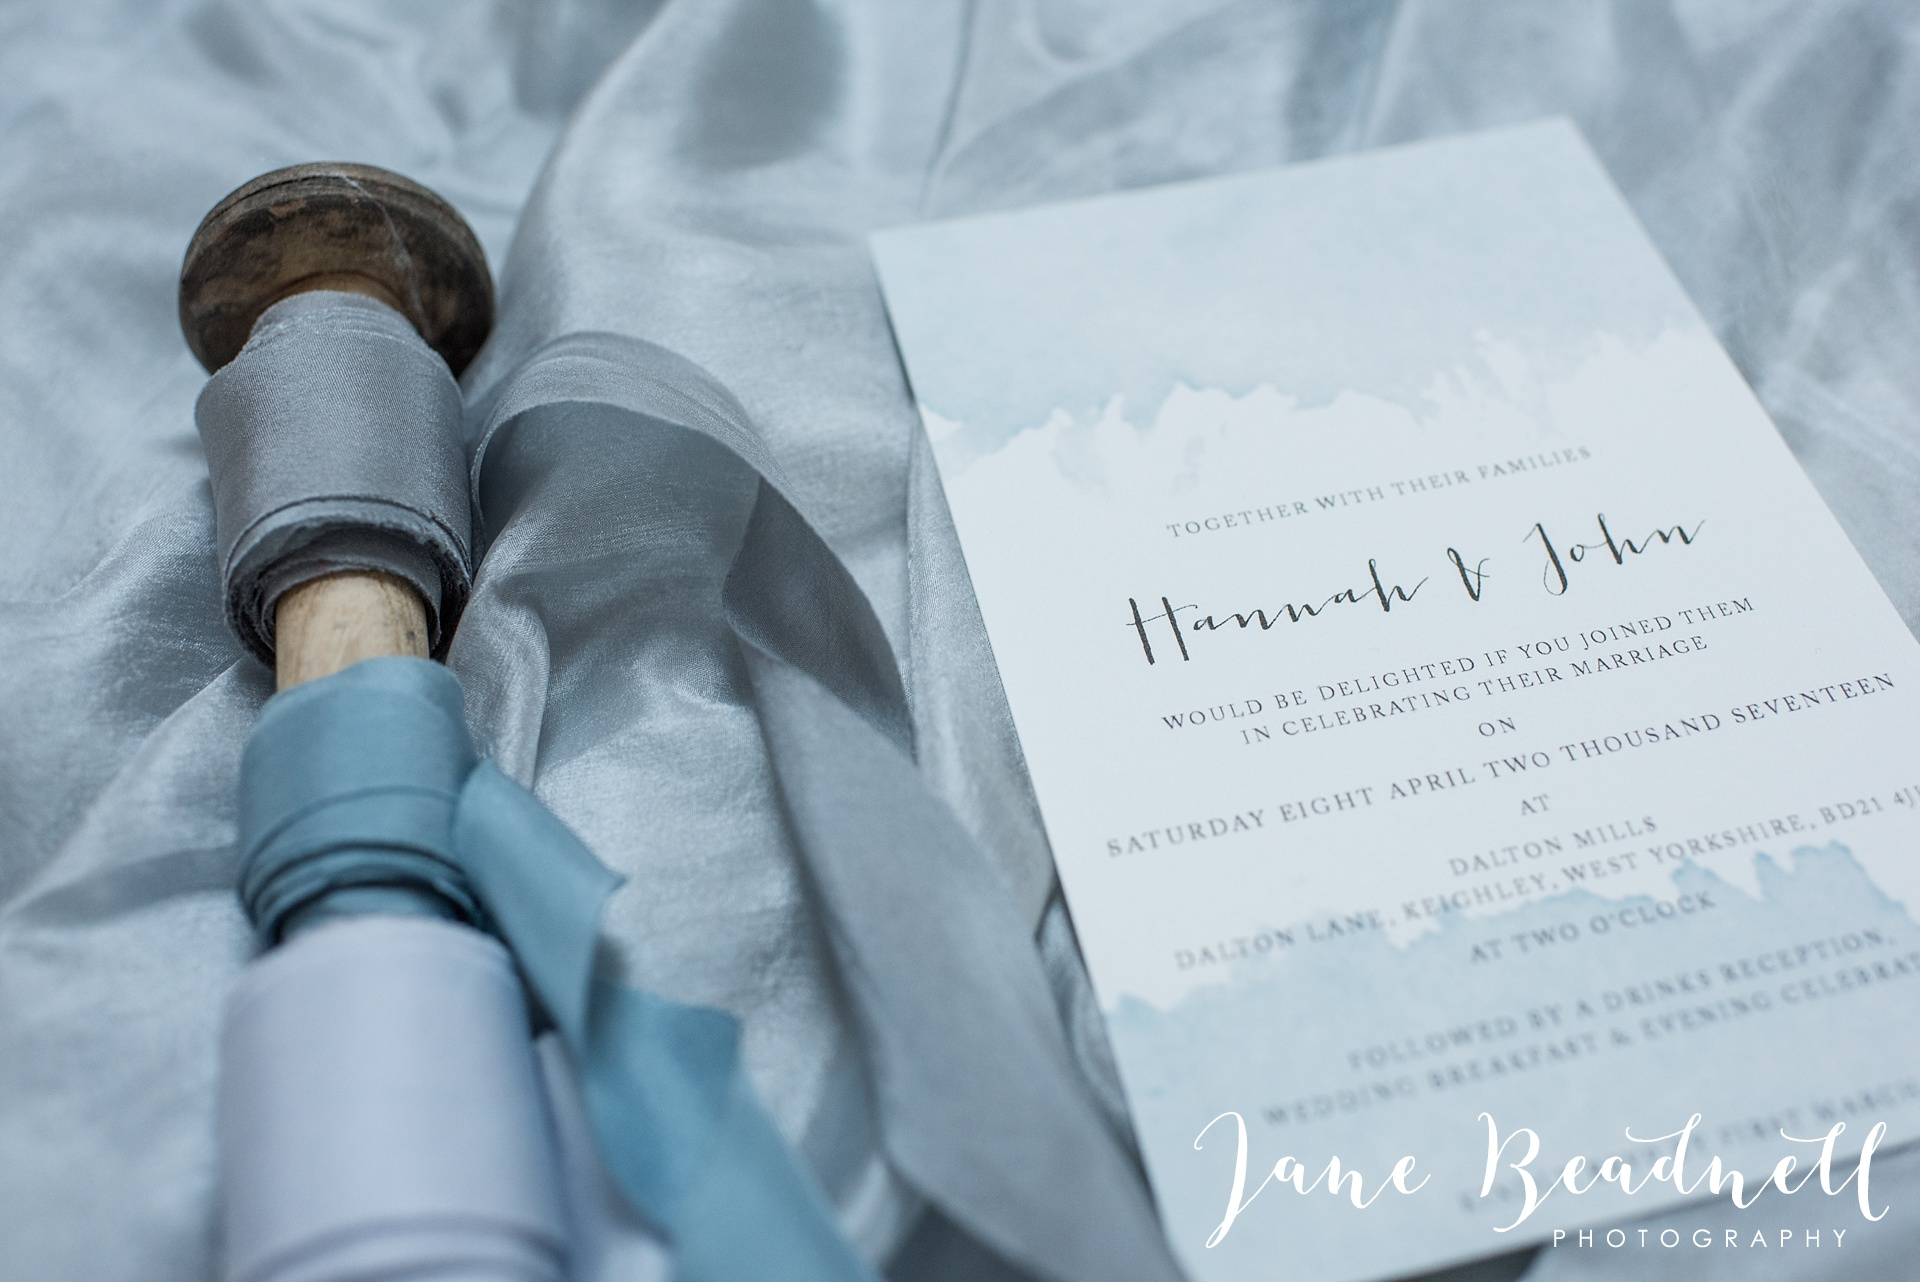 Ballet themed styled wedding shoot at Dalton Mills by Jane Beadnell Photography-0_0103